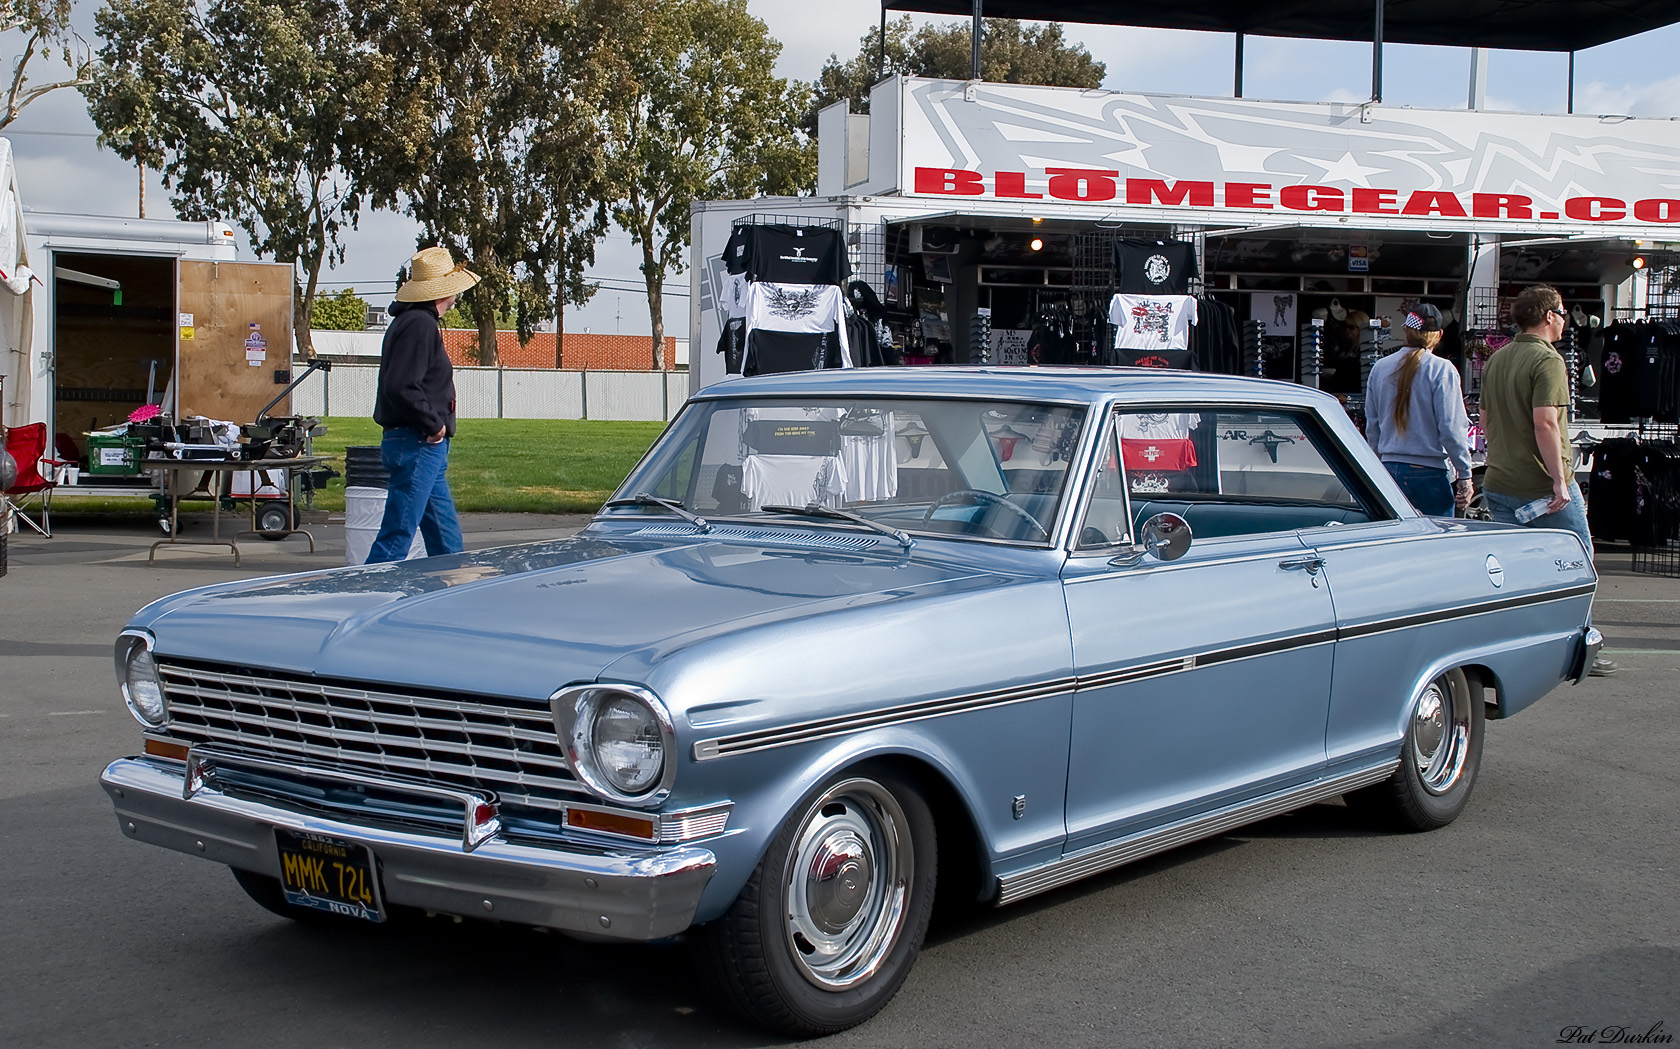 1963 Chevy Nova Wiring Diagram Likewise Chevy Truck Wiring Diagram